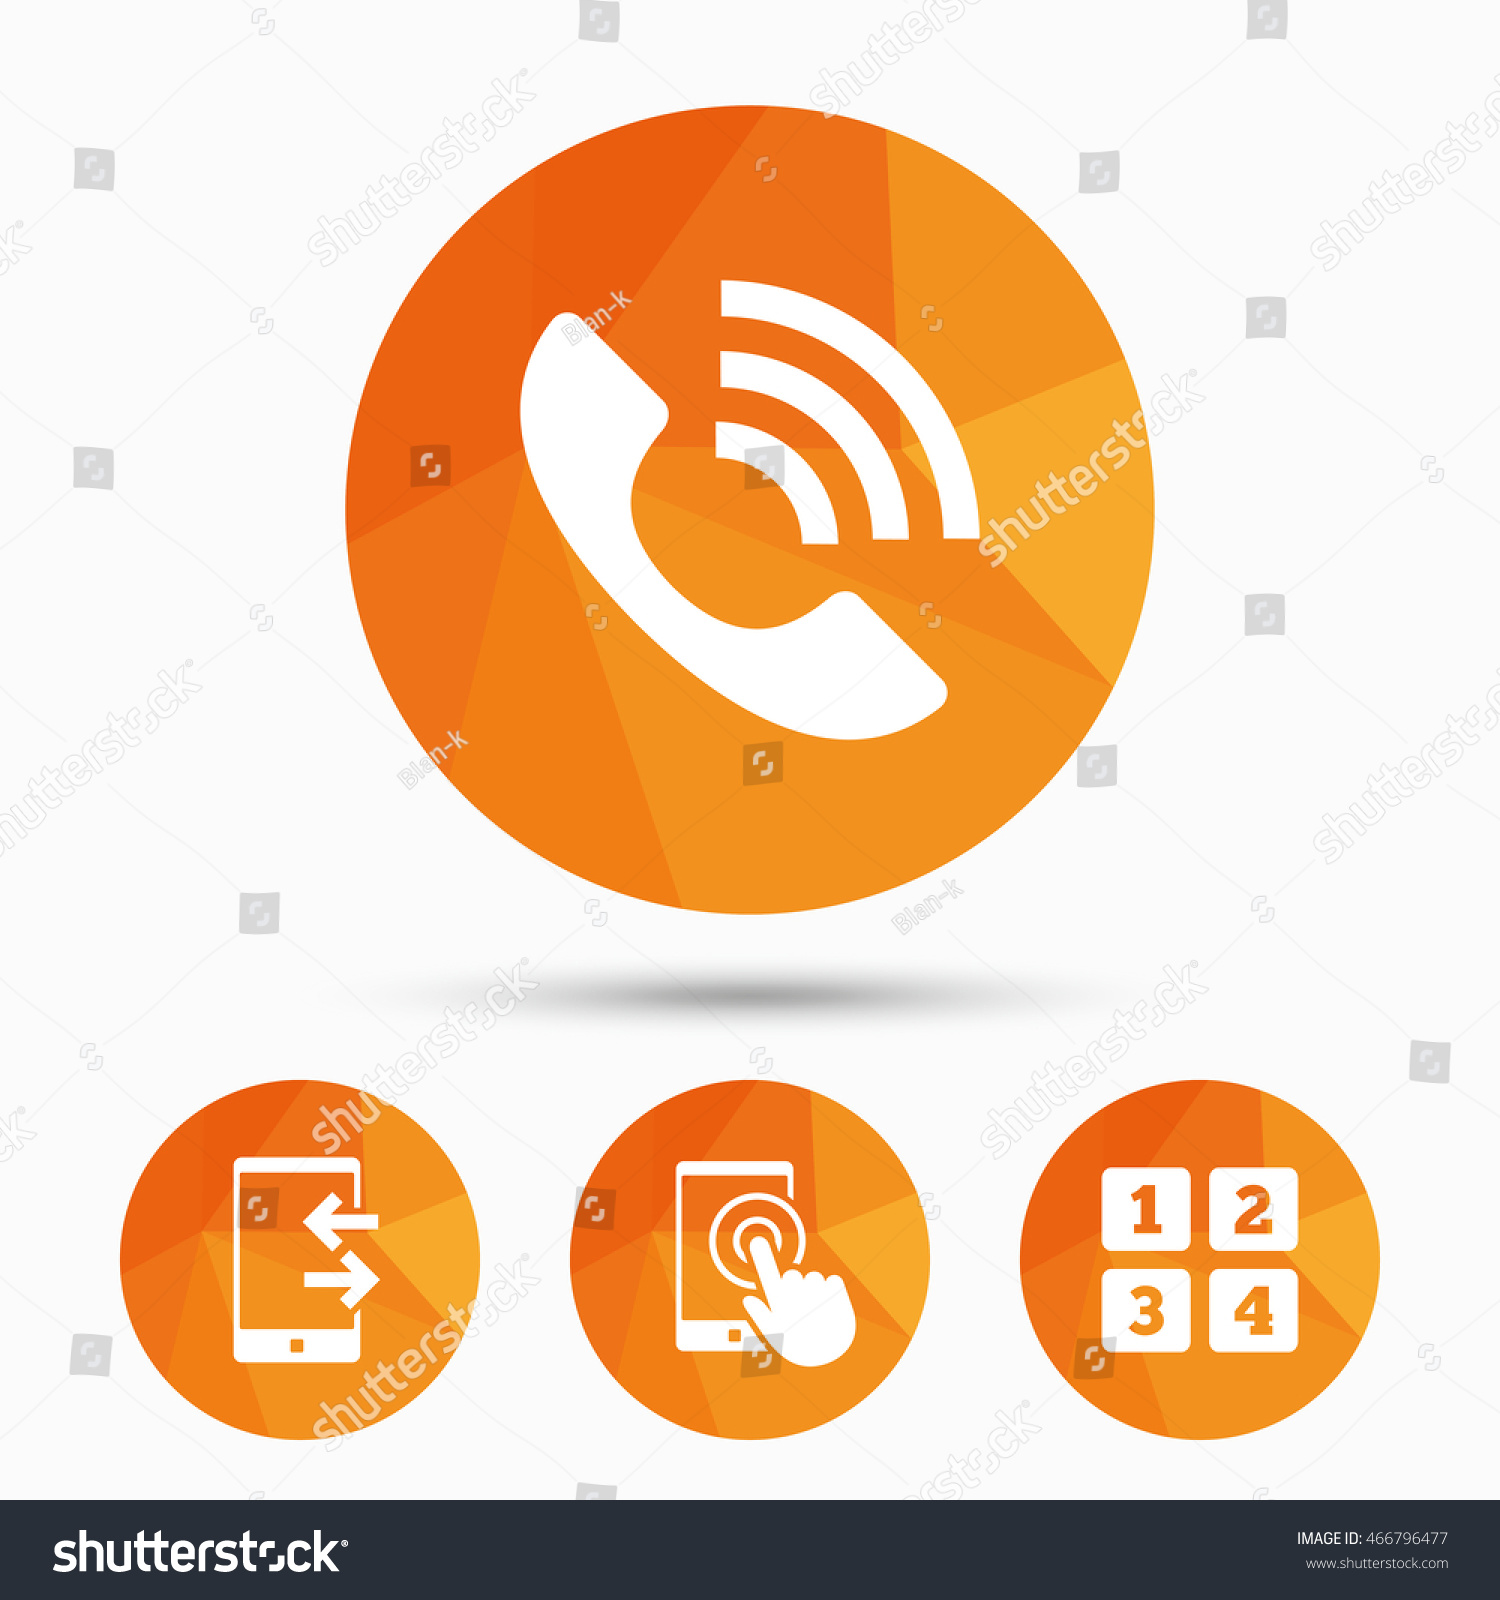 Phone icons touch screen smartphone sign stock illustration phone icons touch screen smartphone sign call center support symbol cellphone keyboard symbol biocorpaavc Images